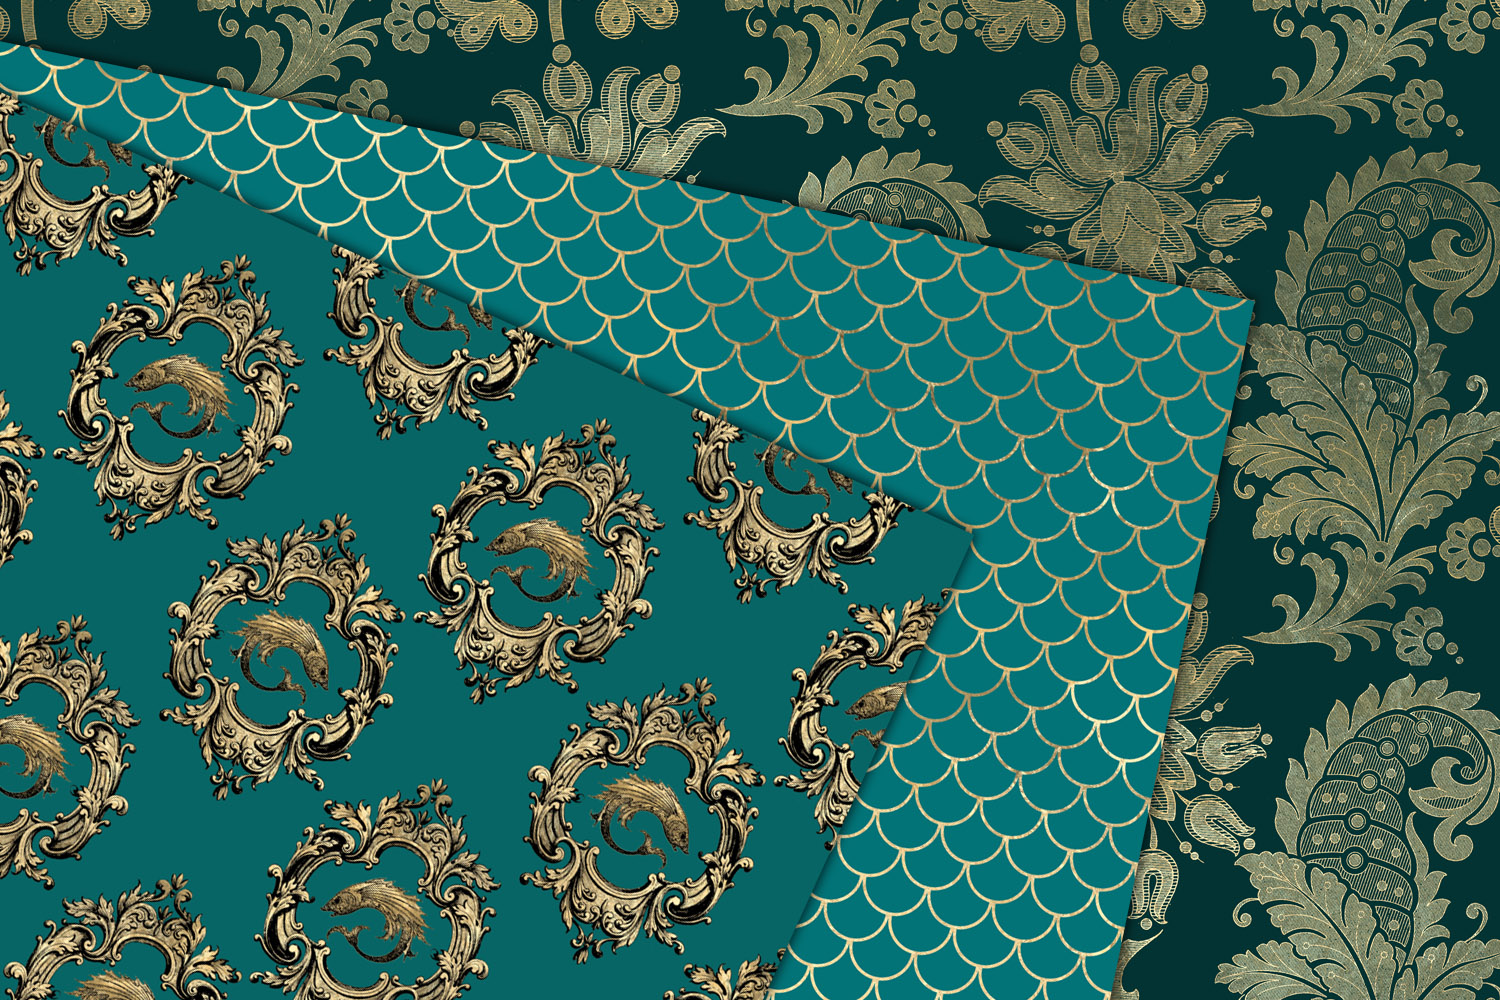 Teal and Gold Mermaid Digital Paper example image 2